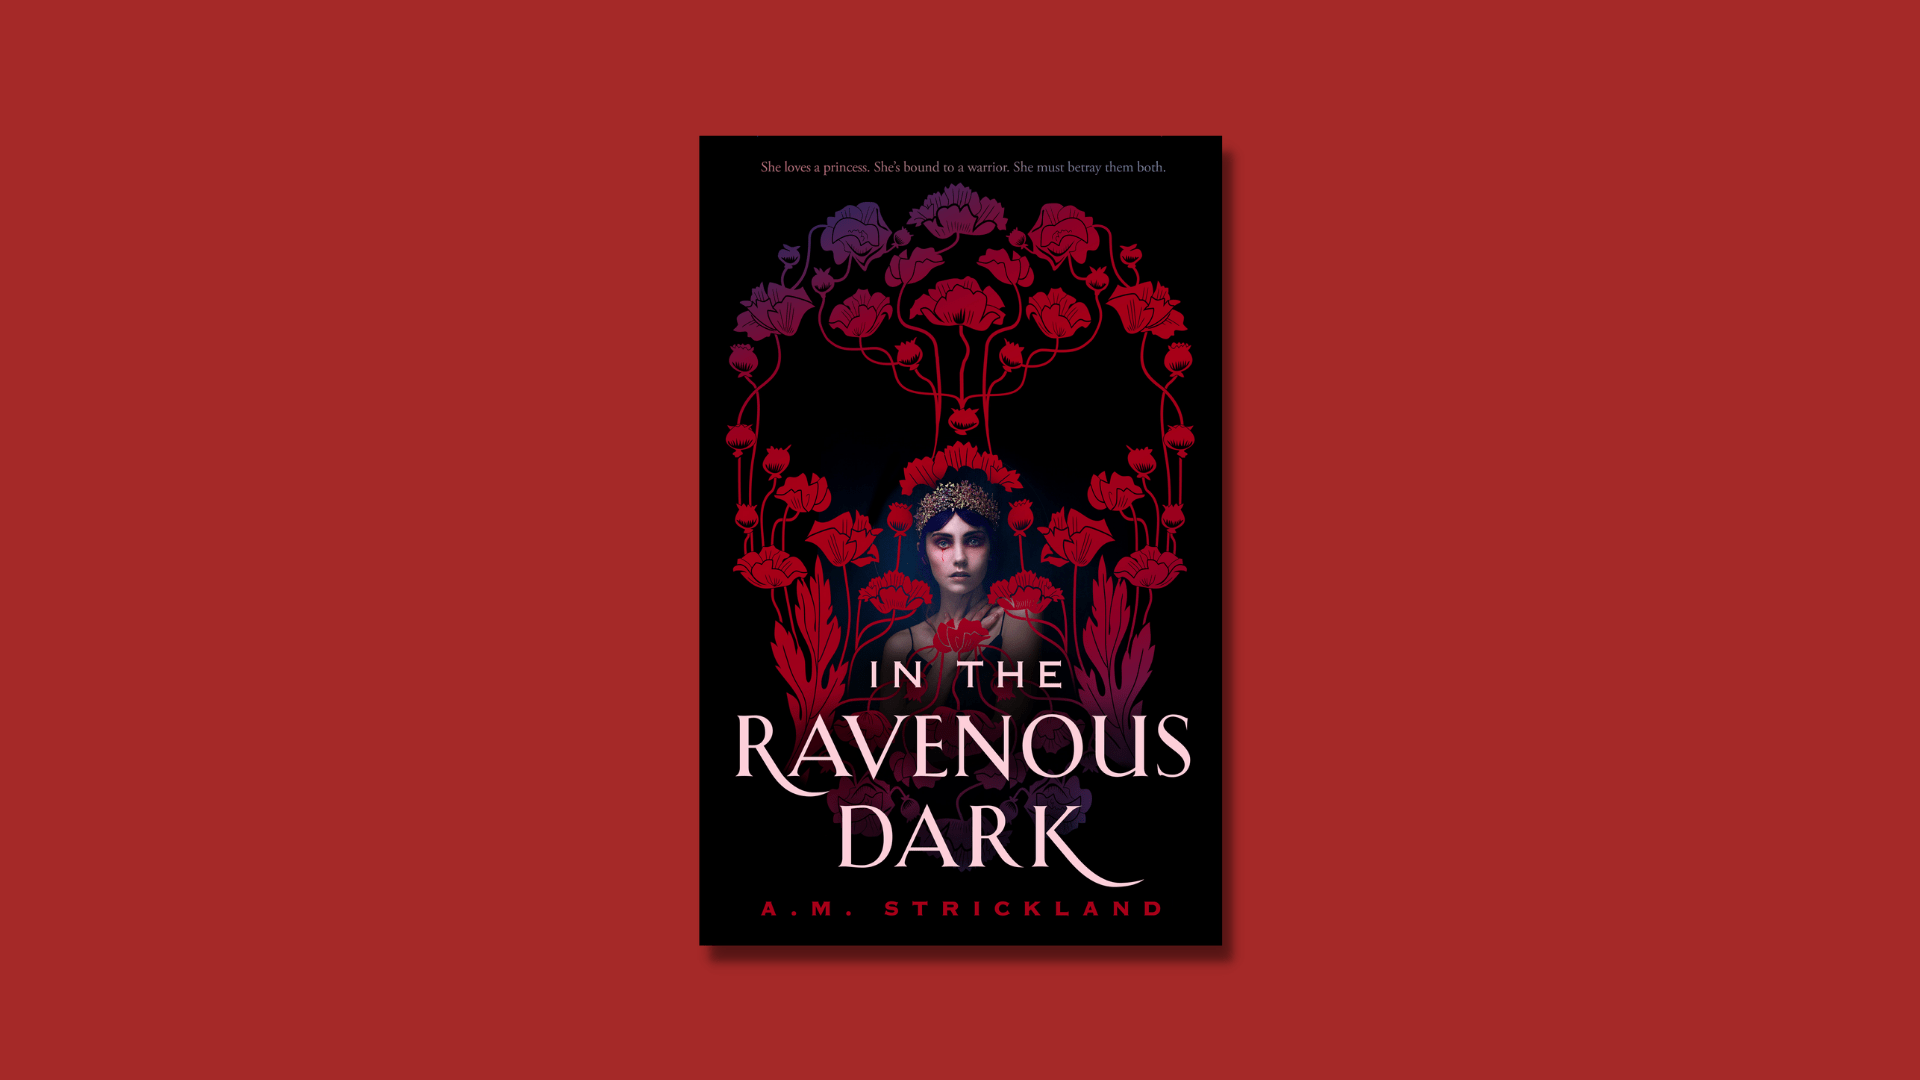 The book In the Ravenous Dark by A.M. Strickland against a dark red background